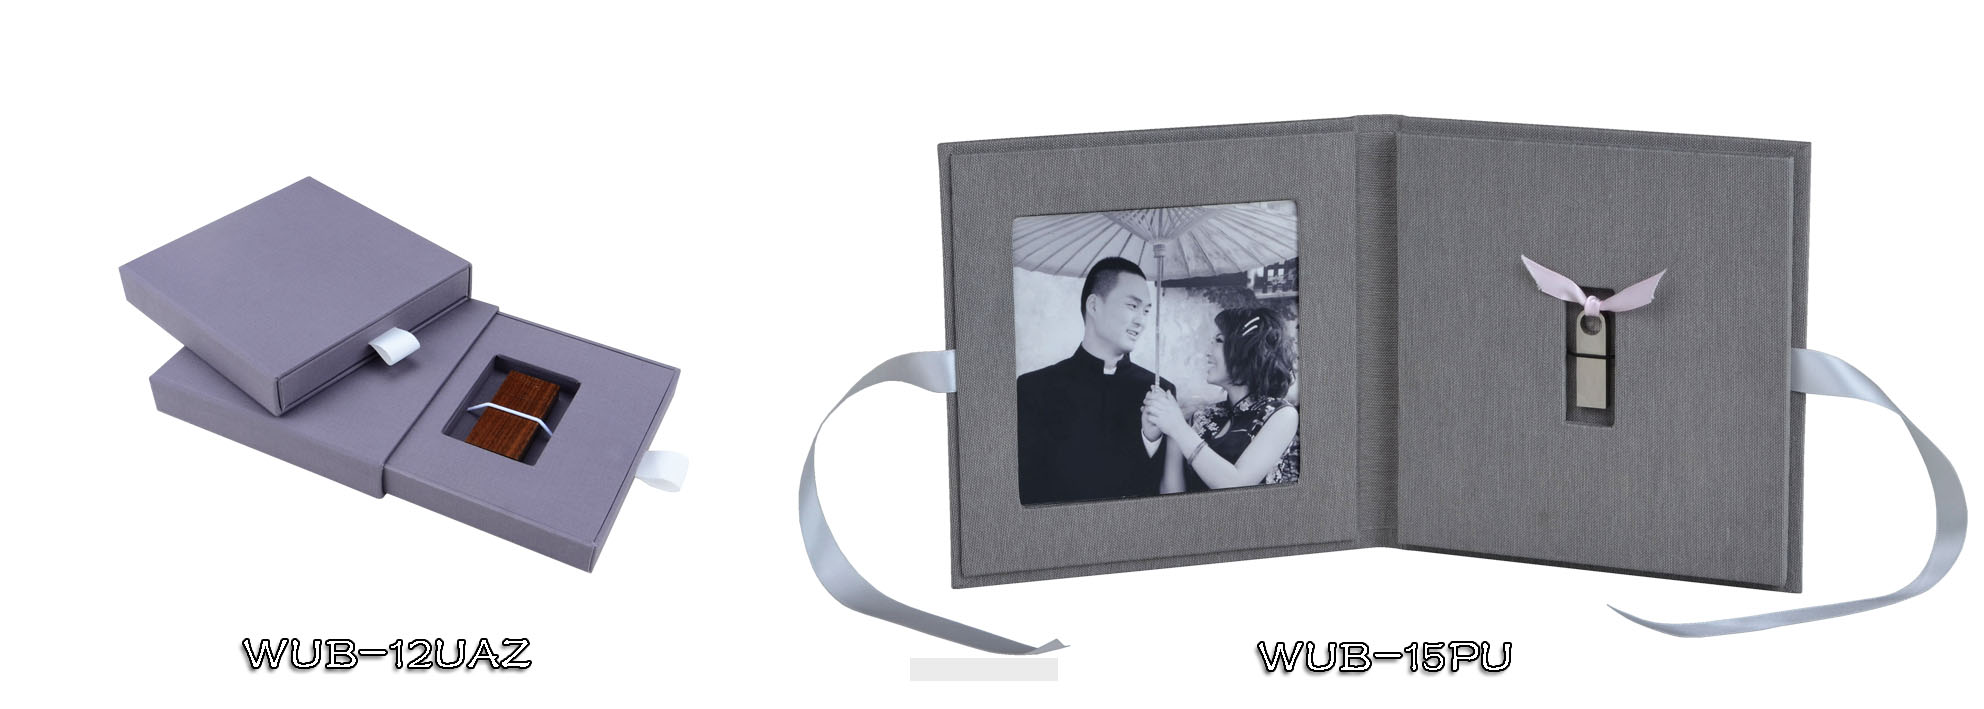 Wedding USB Case